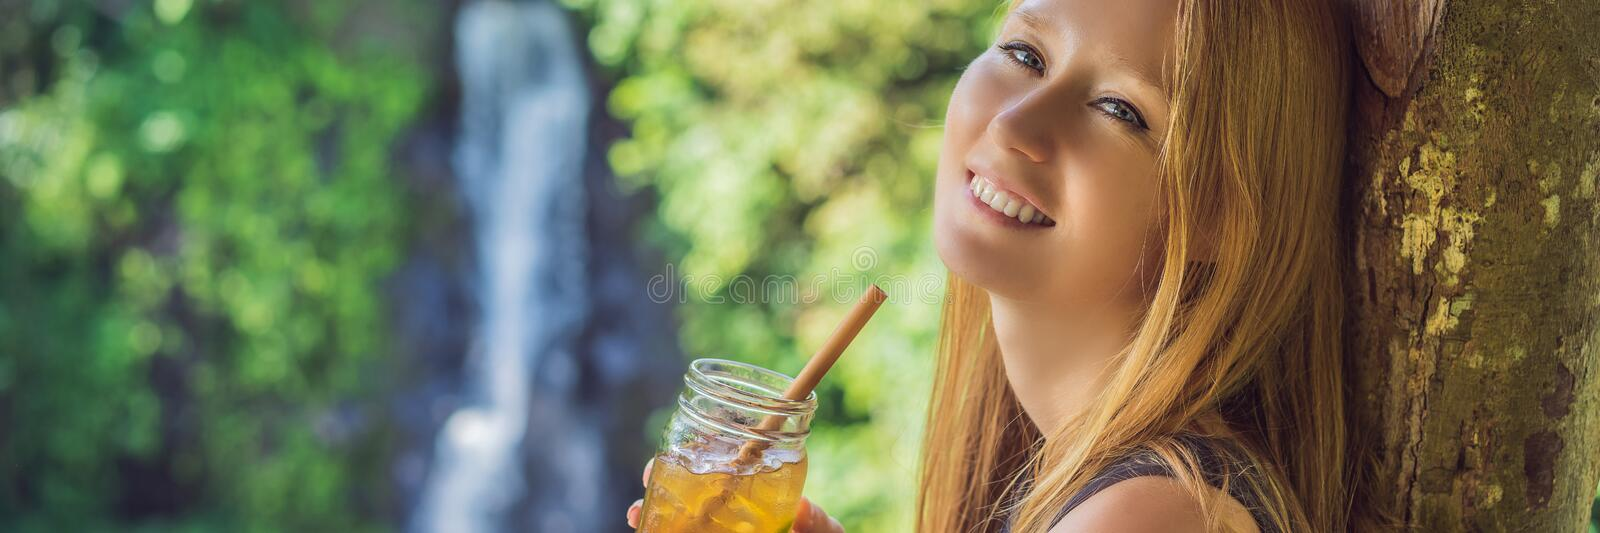 Closeup portrait image of a beautiful woman drinking ice tea with feeling happy in green nature and waterfall garden royalty free stock images